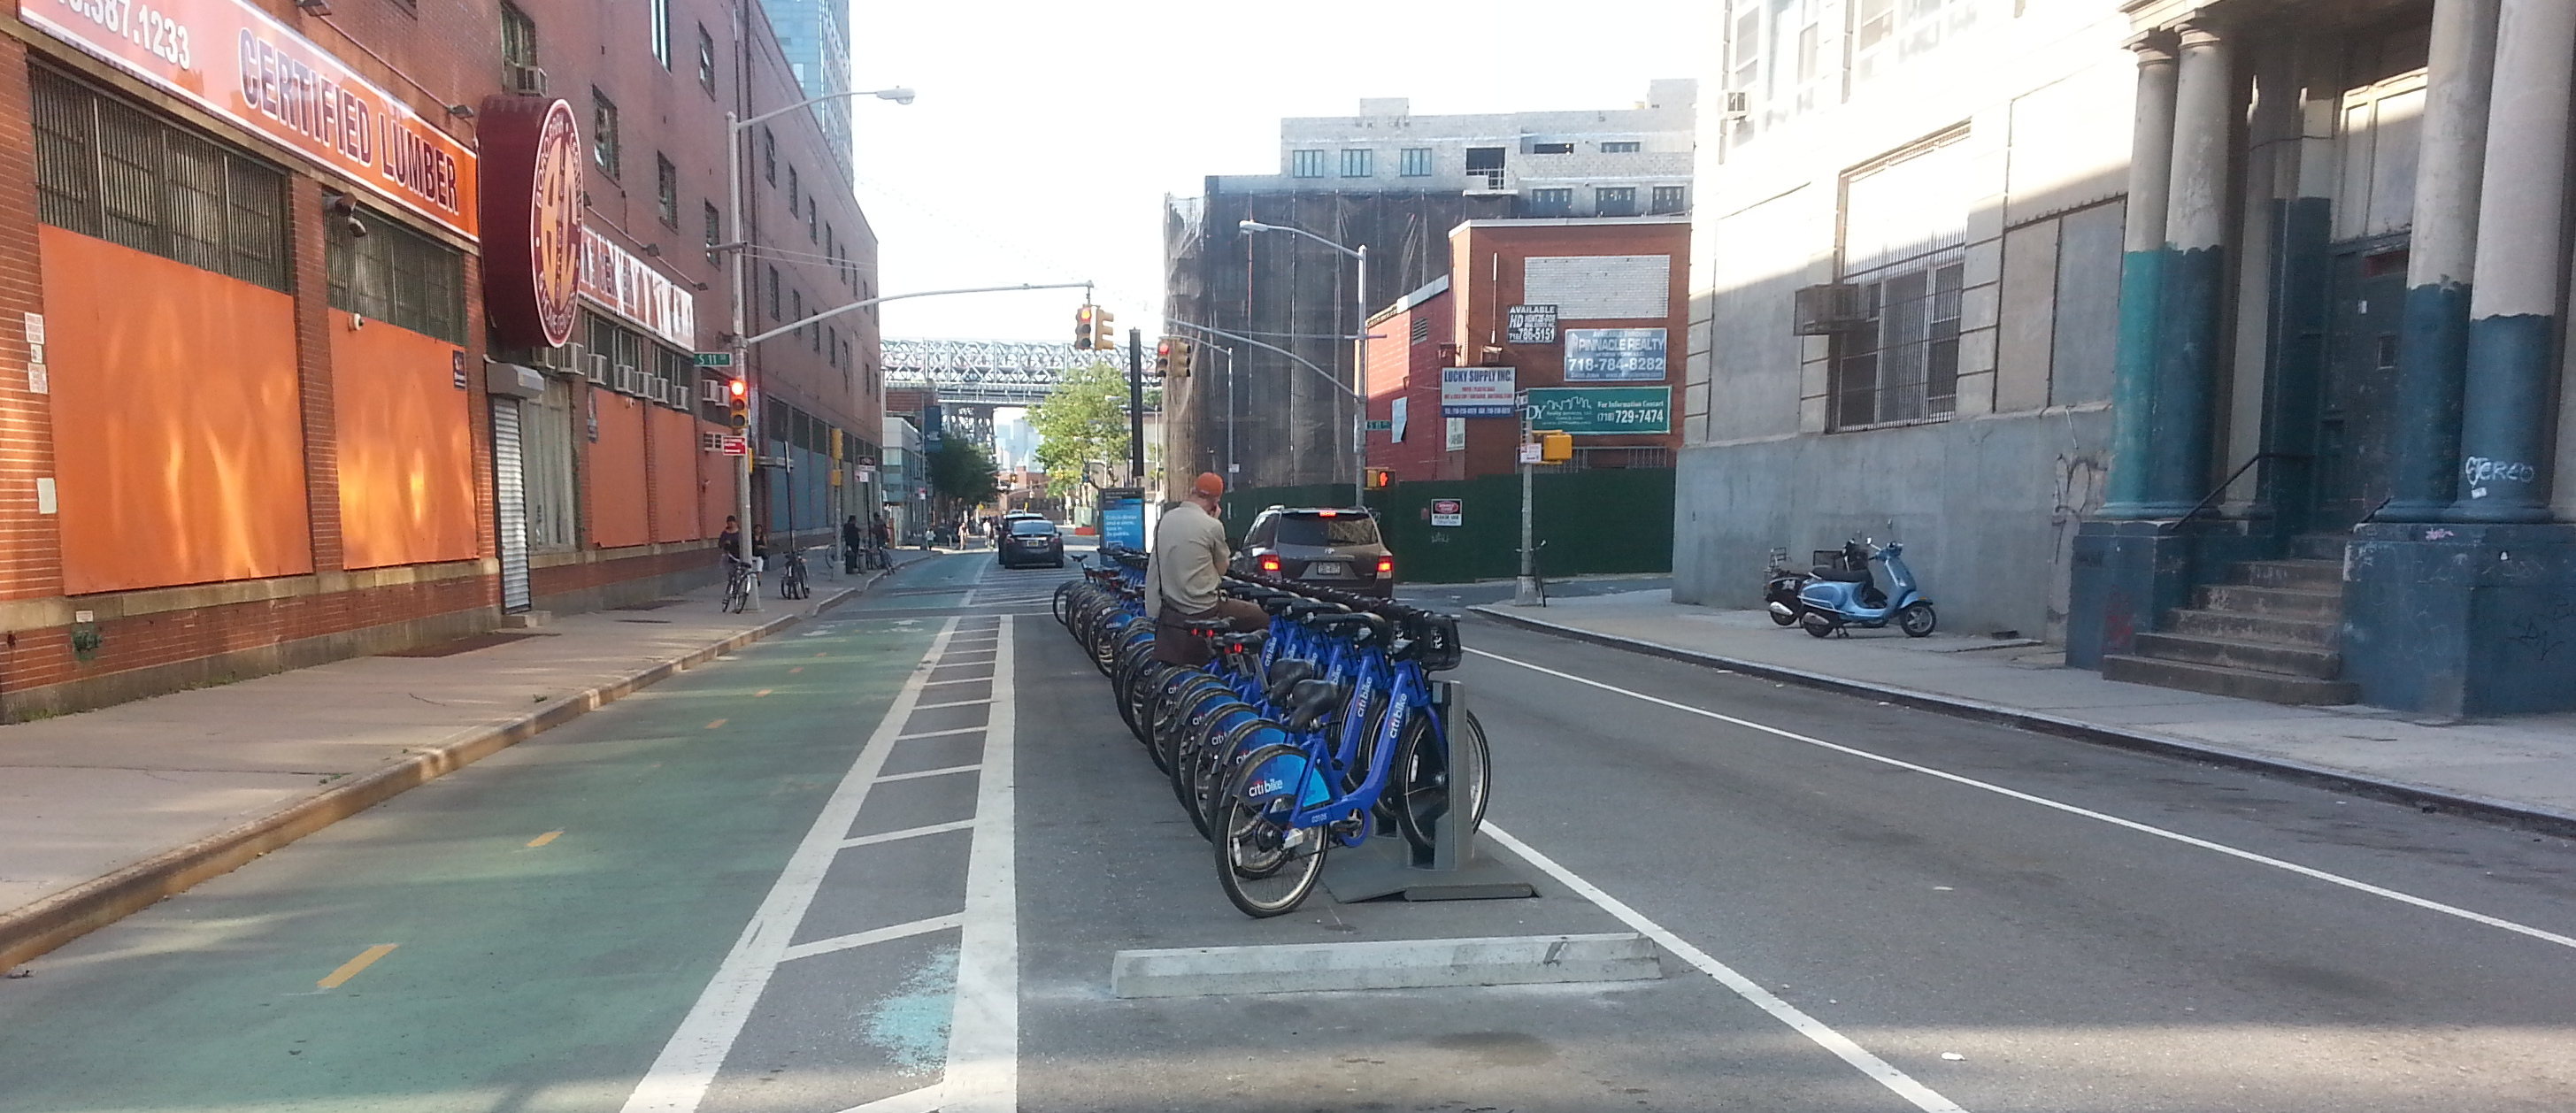 Parking for 27 bikes has replaced parking for four or five cars, and complaints abound. Photo: Stephen Miller